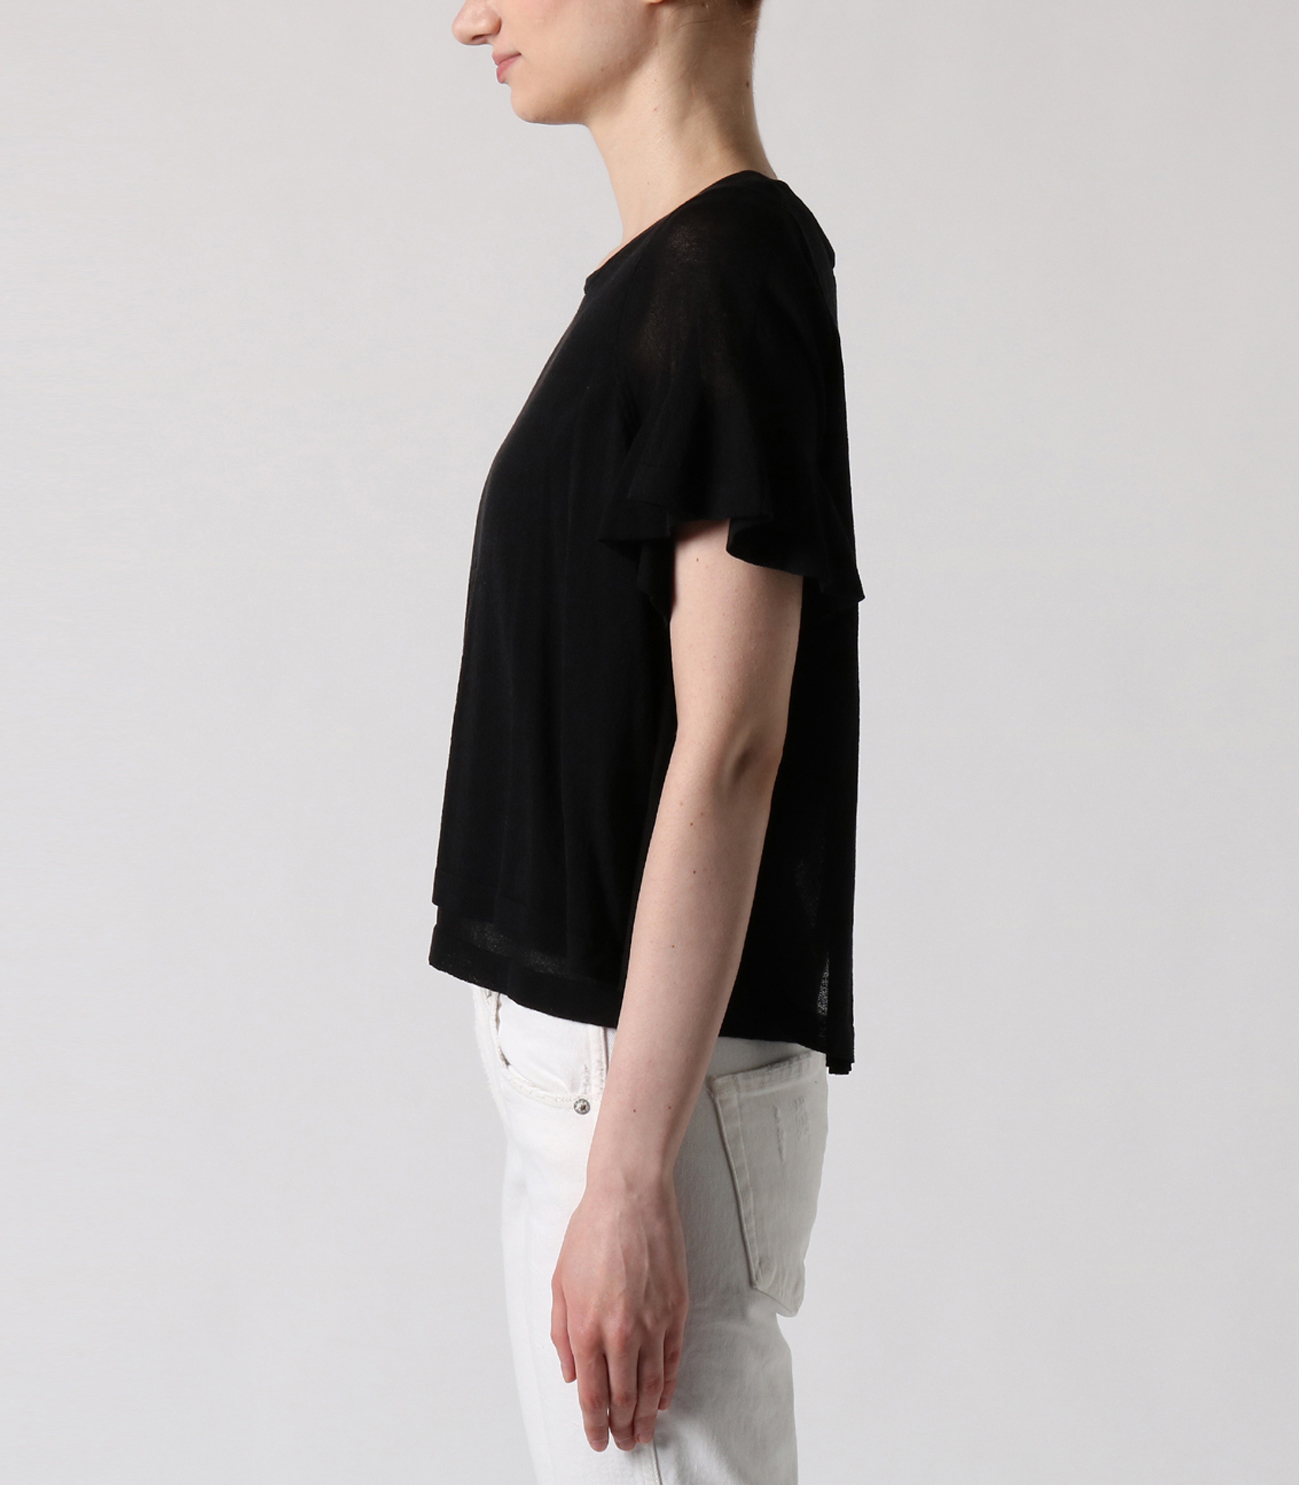 crepe sweater s/s doubled top 詳細画像 black 3